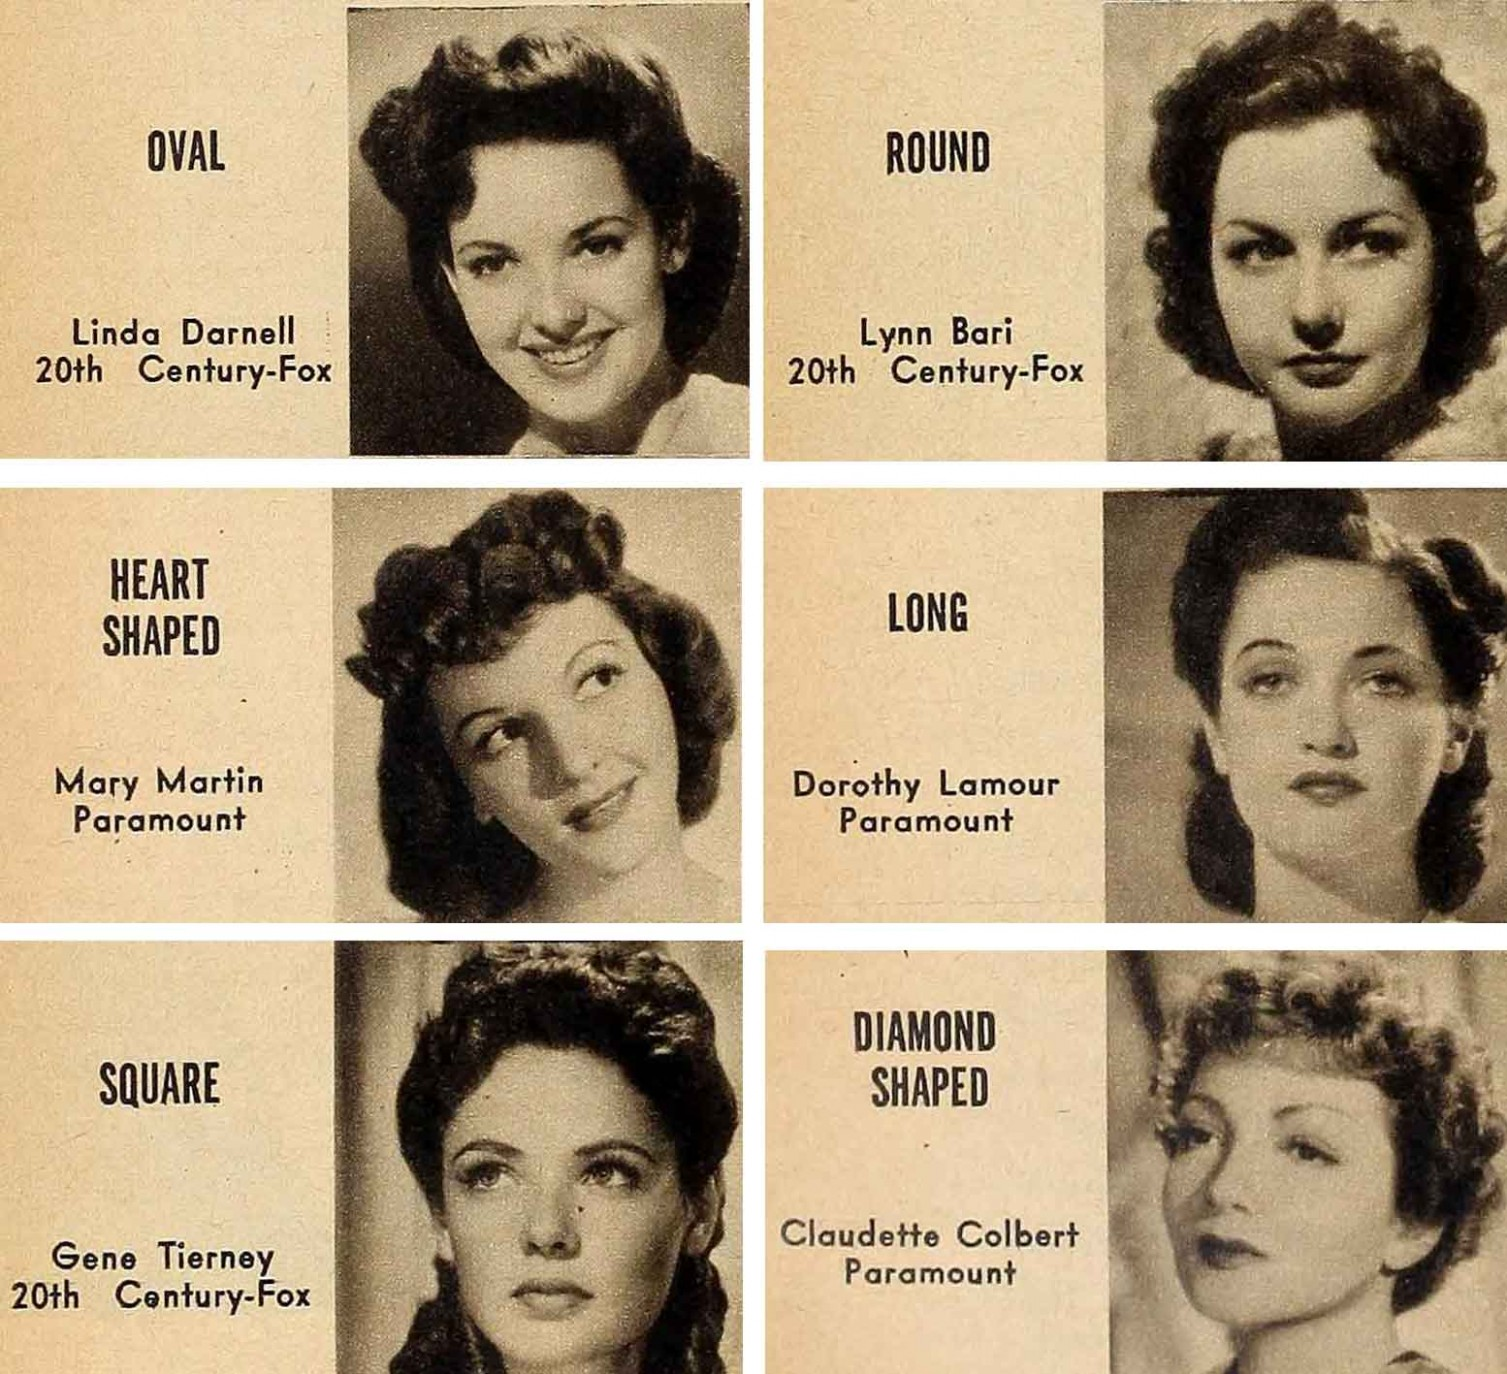 9s Hair And Make Up Secrets For Your Face Type Vintage Makeup 1940S Short Hair